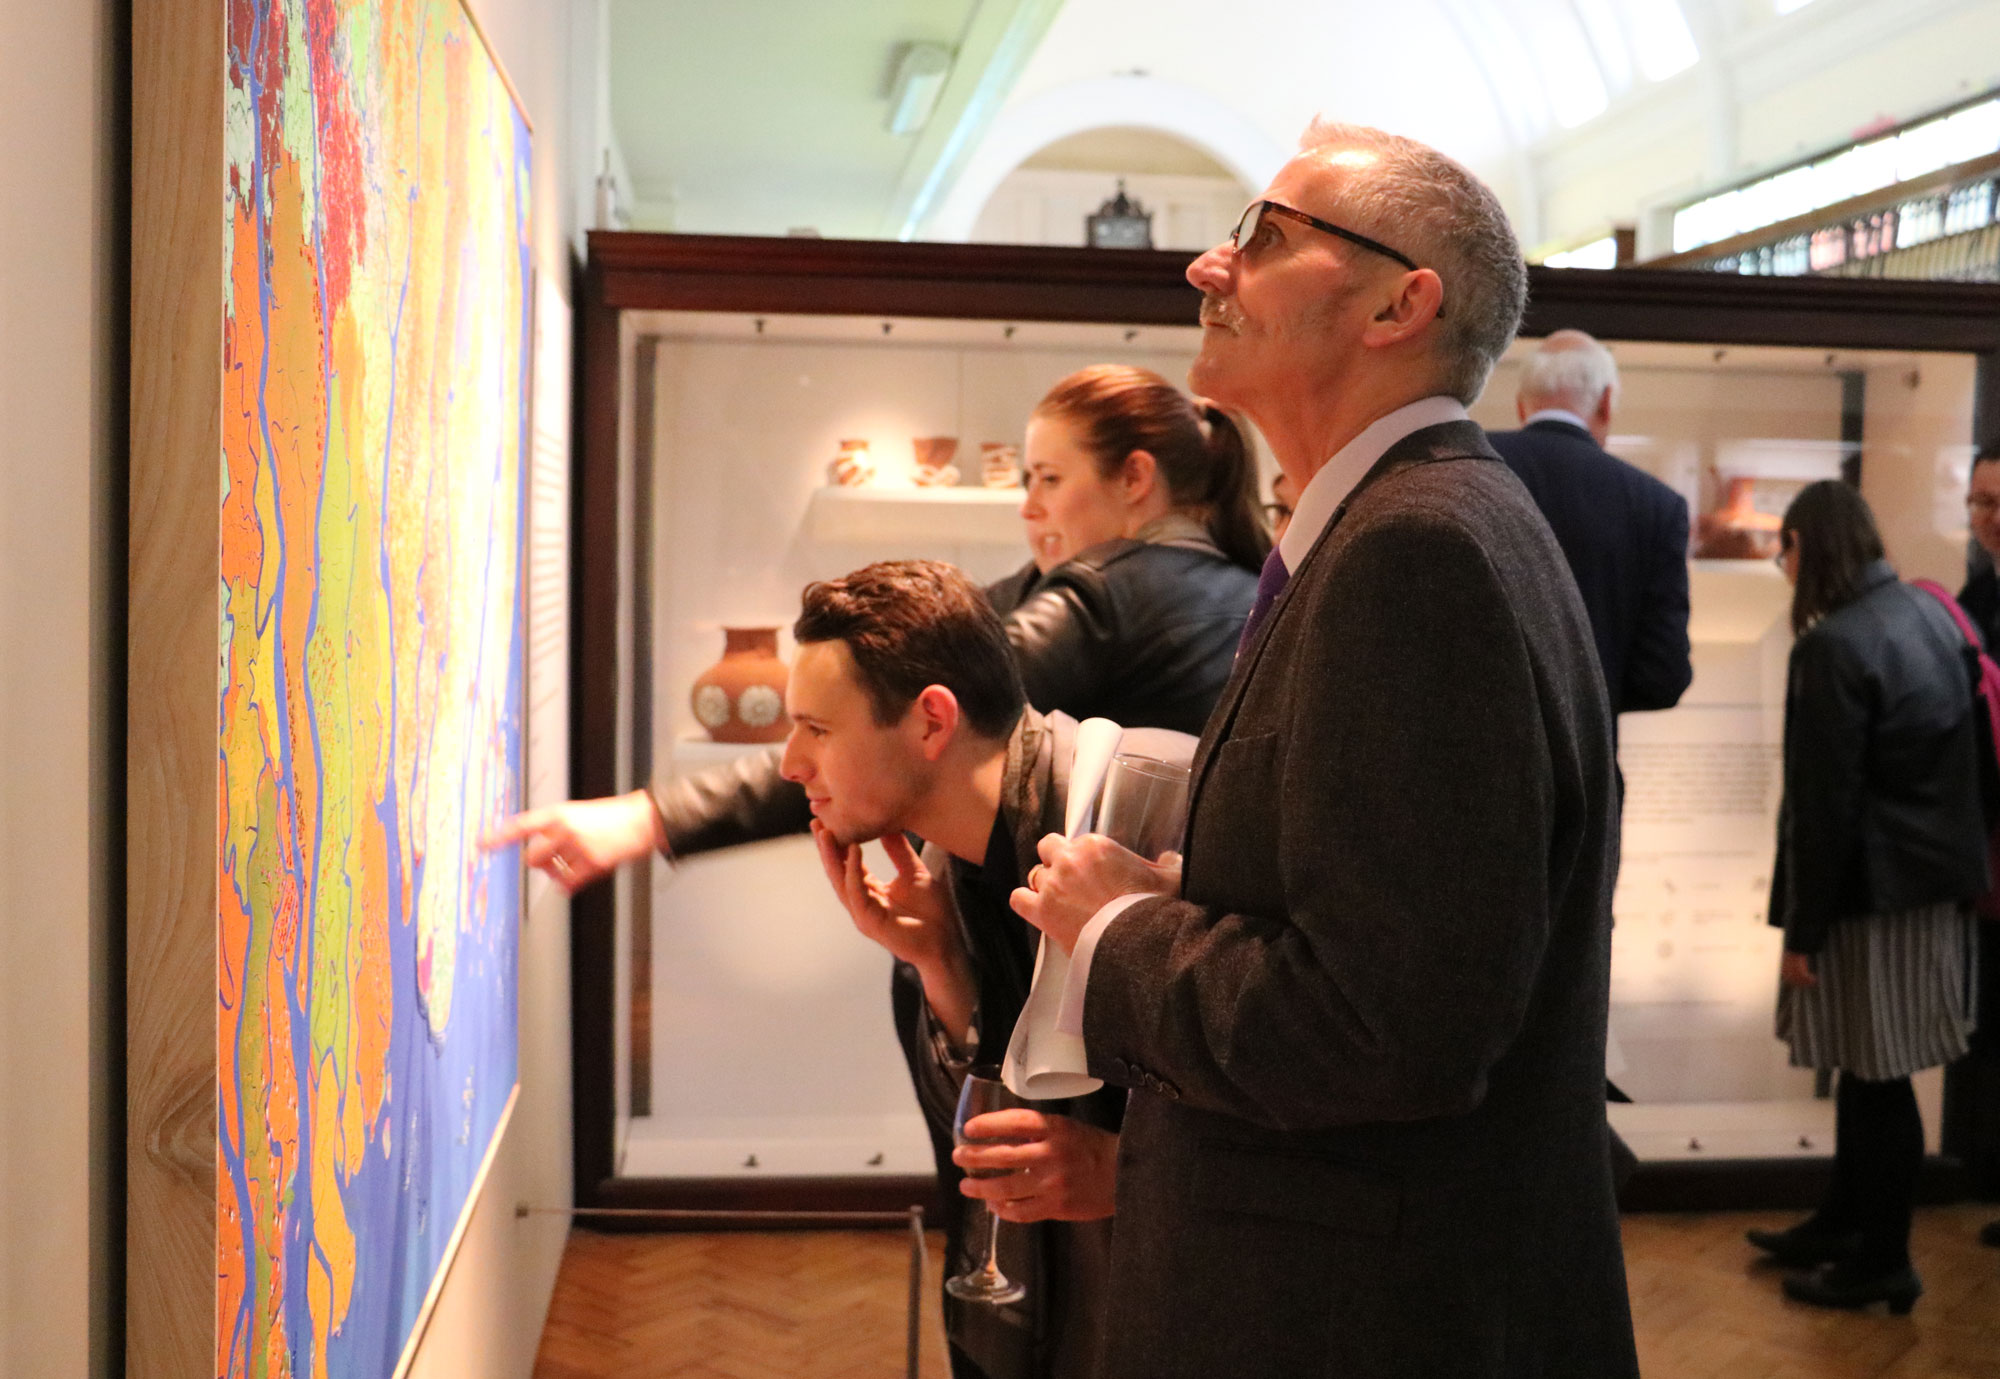 A group of adults are looking at artwork on a wall inside a gallery